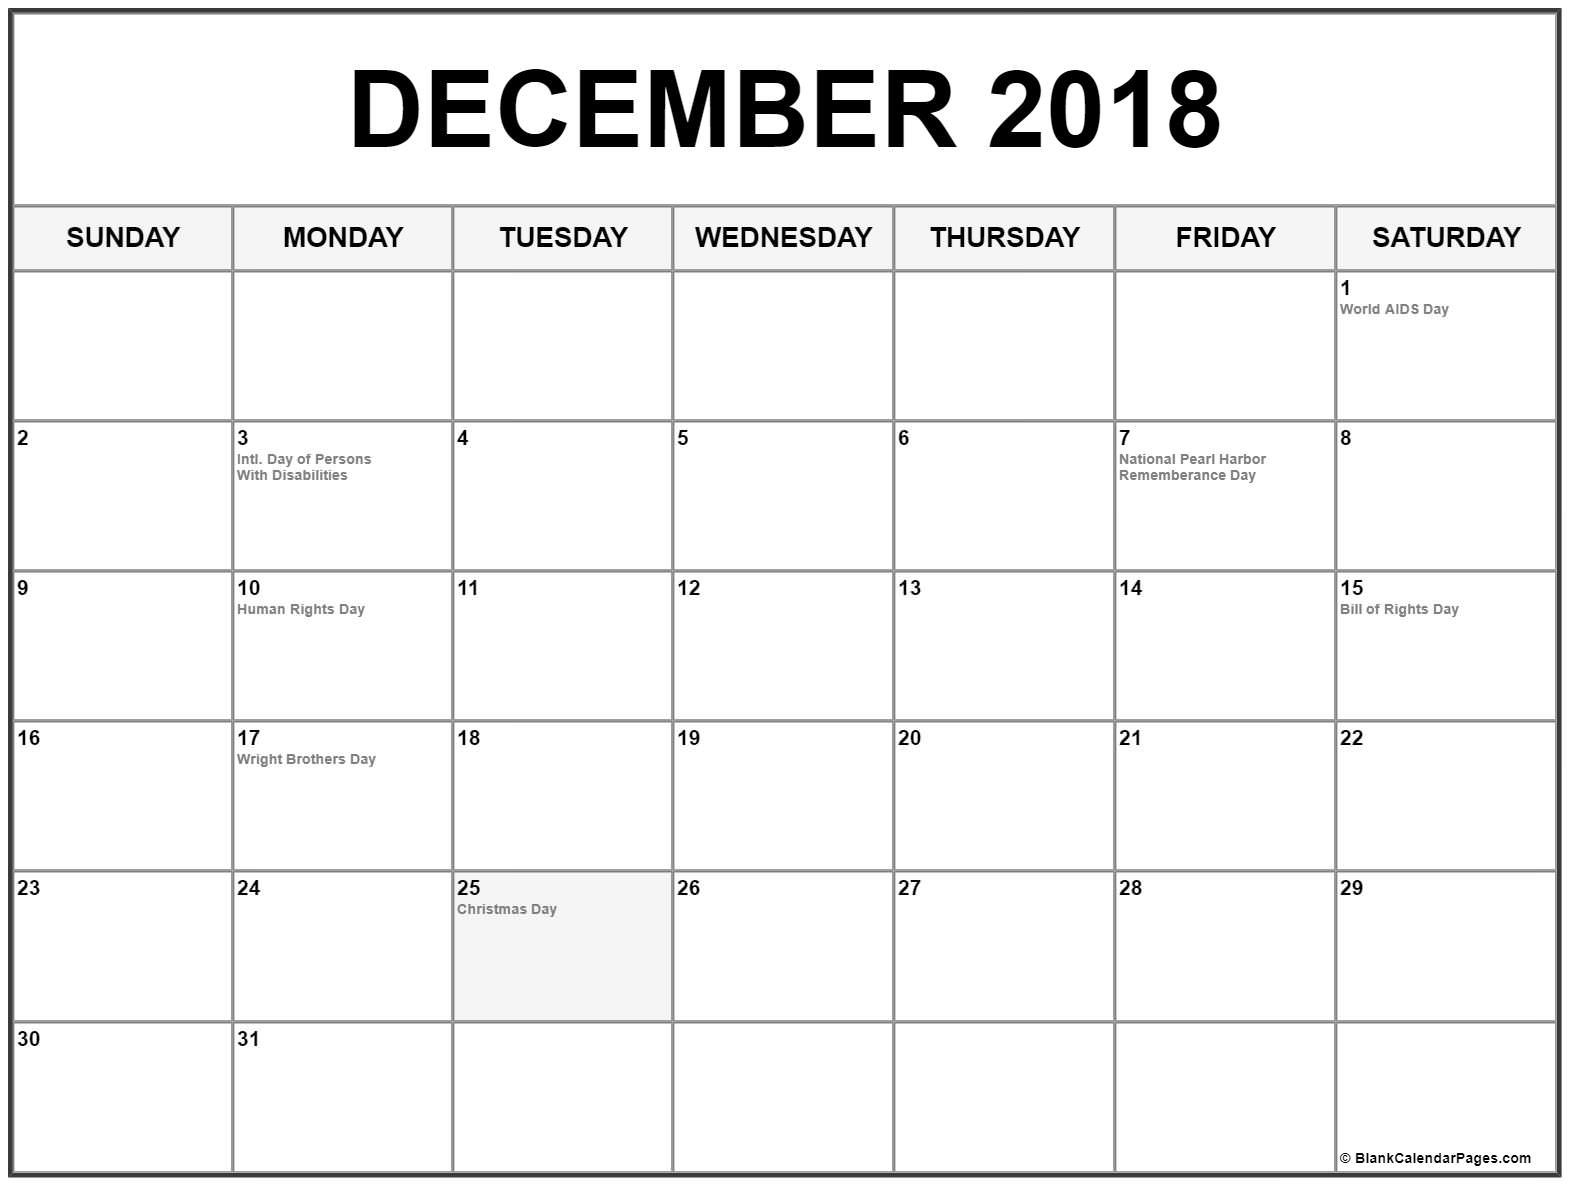 December 2018 Calendar With Holidays Printable Calendar Usa Uk